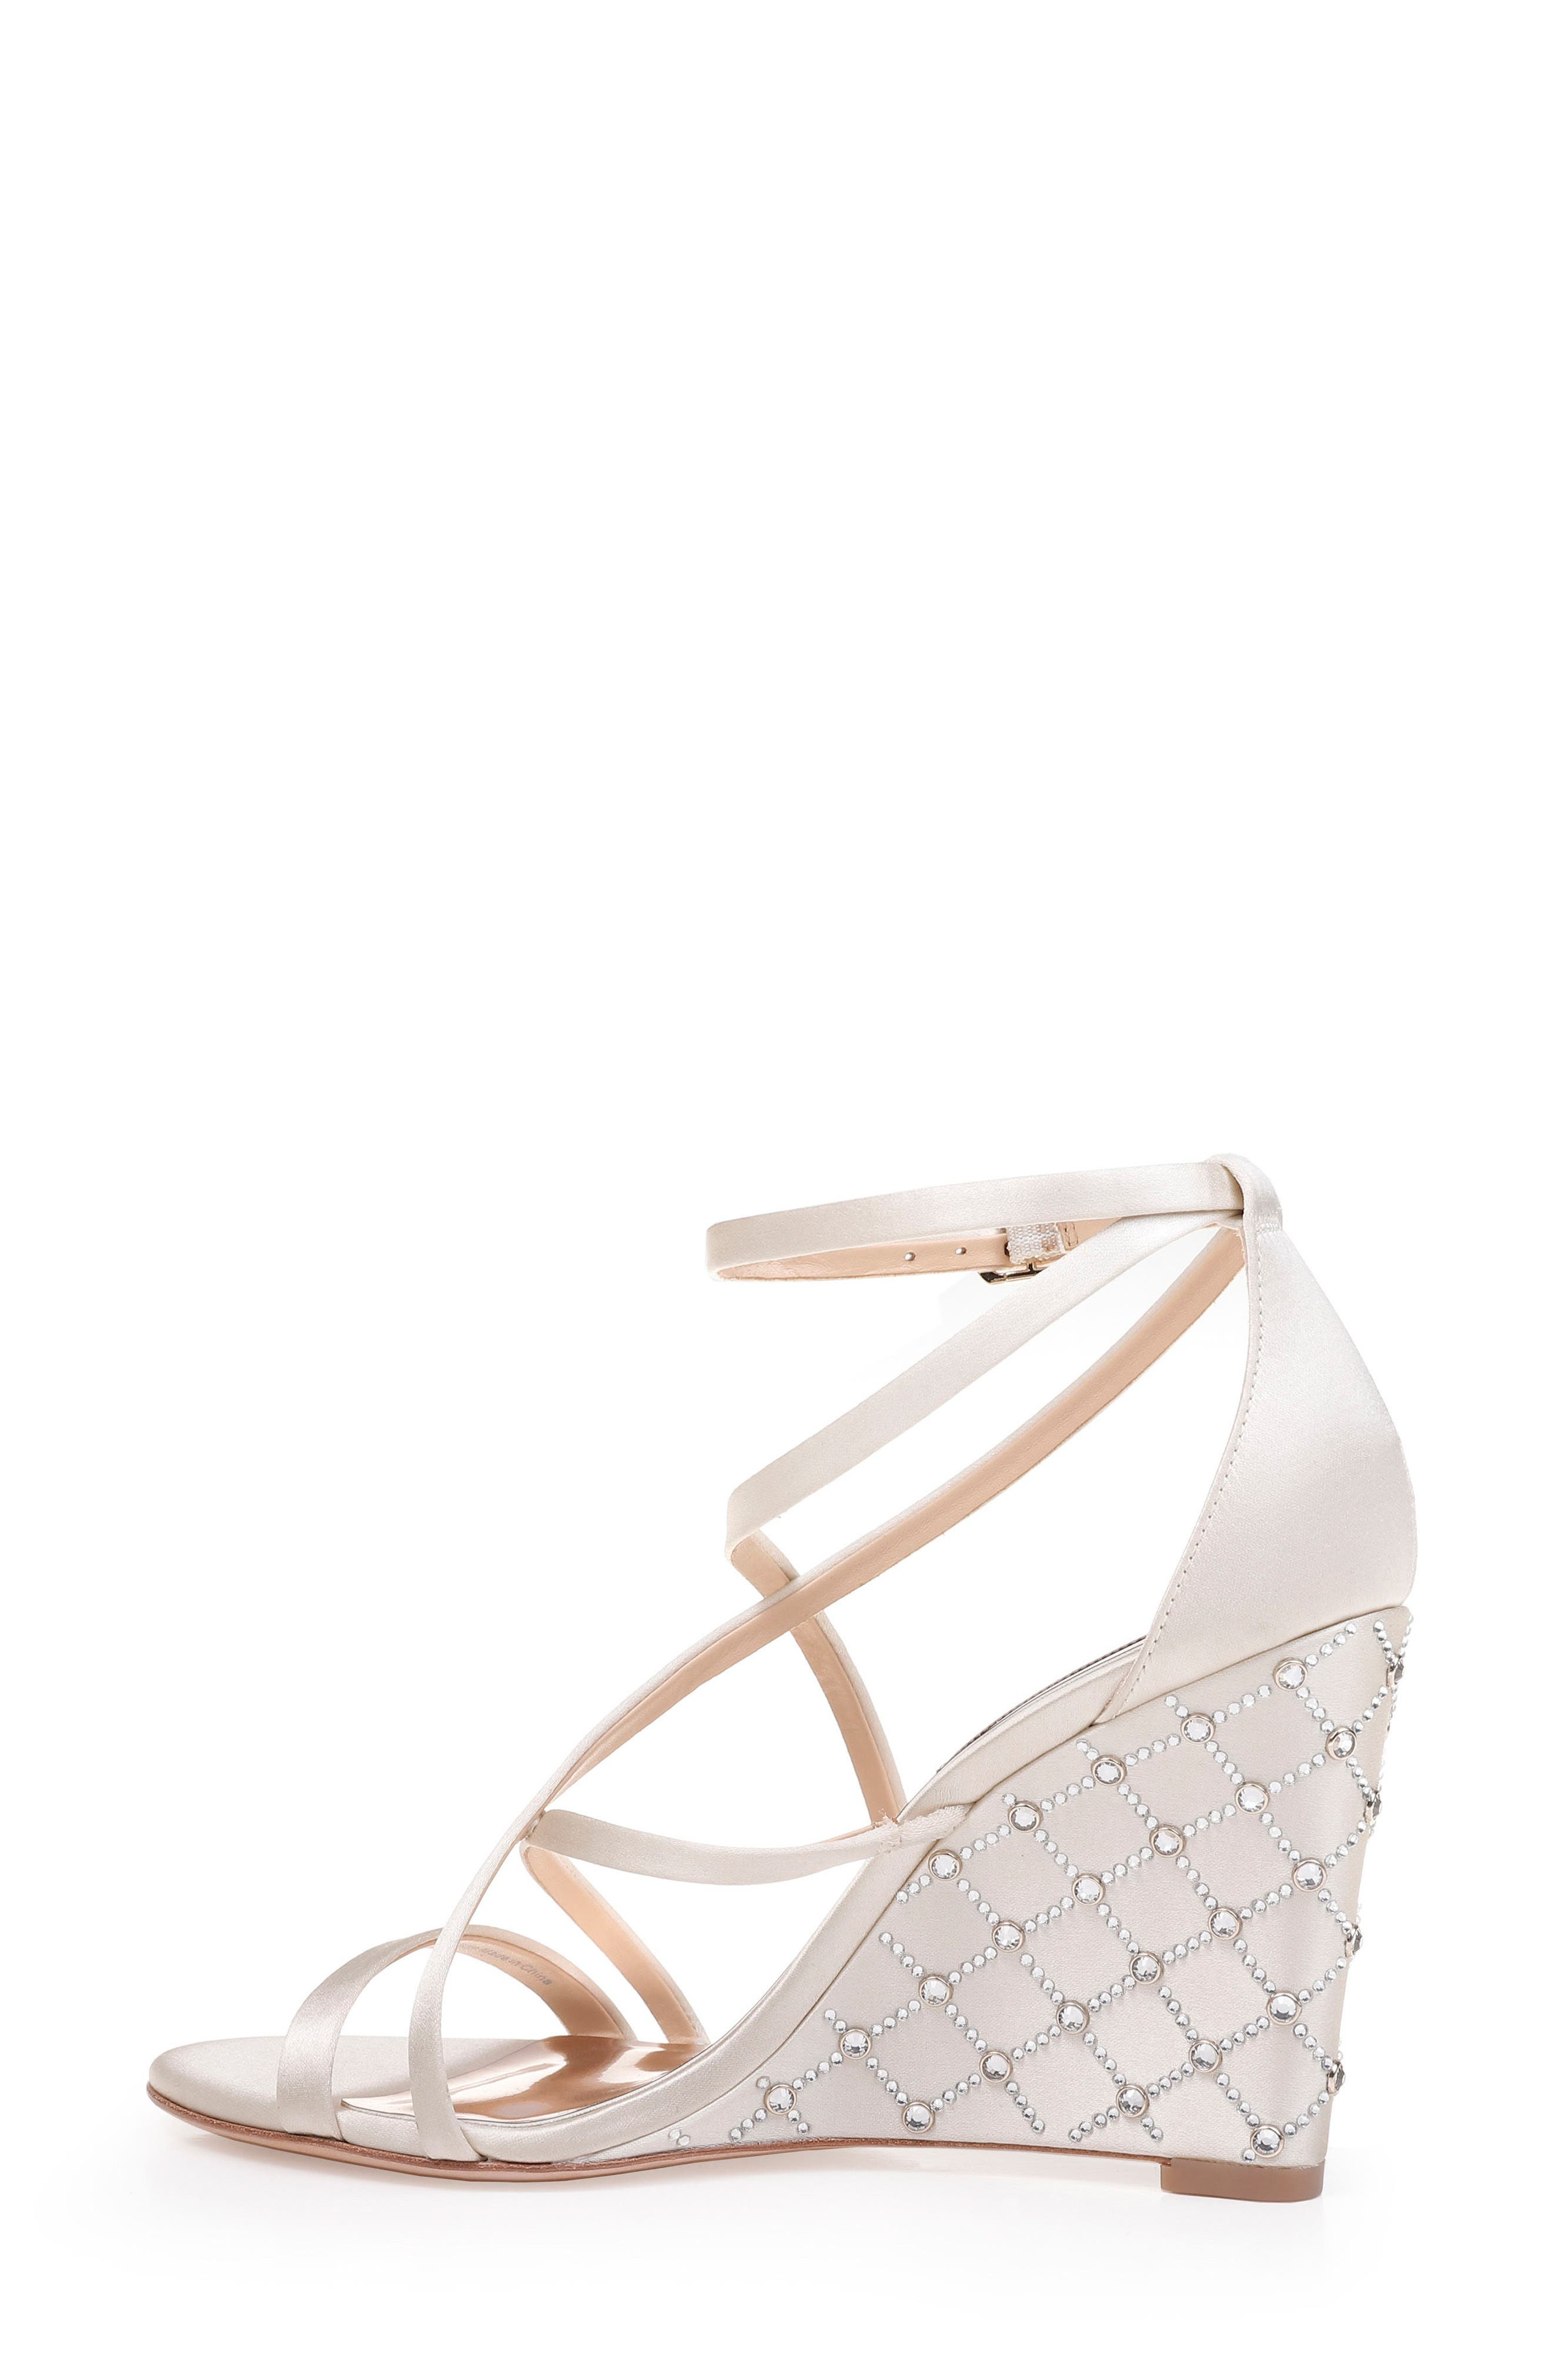 Shelly Strappy Wedge Sandal,                             Alternate thumbnail 2, color,                             Ivory Satin